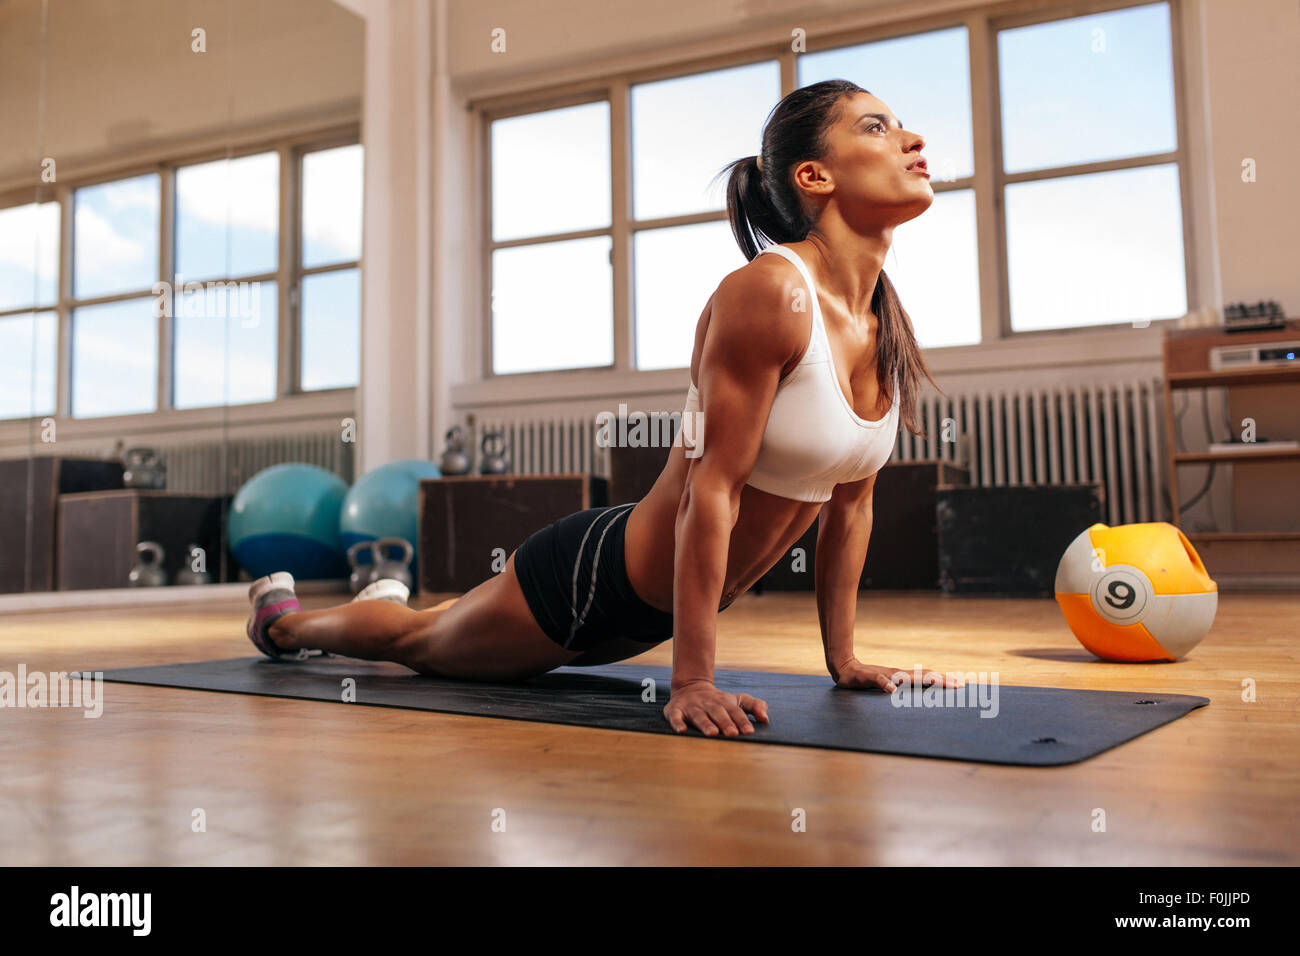 Woman doing core stretch on fitness mat. Muscular young woman doing stretching exercise in gym. - Stock Image